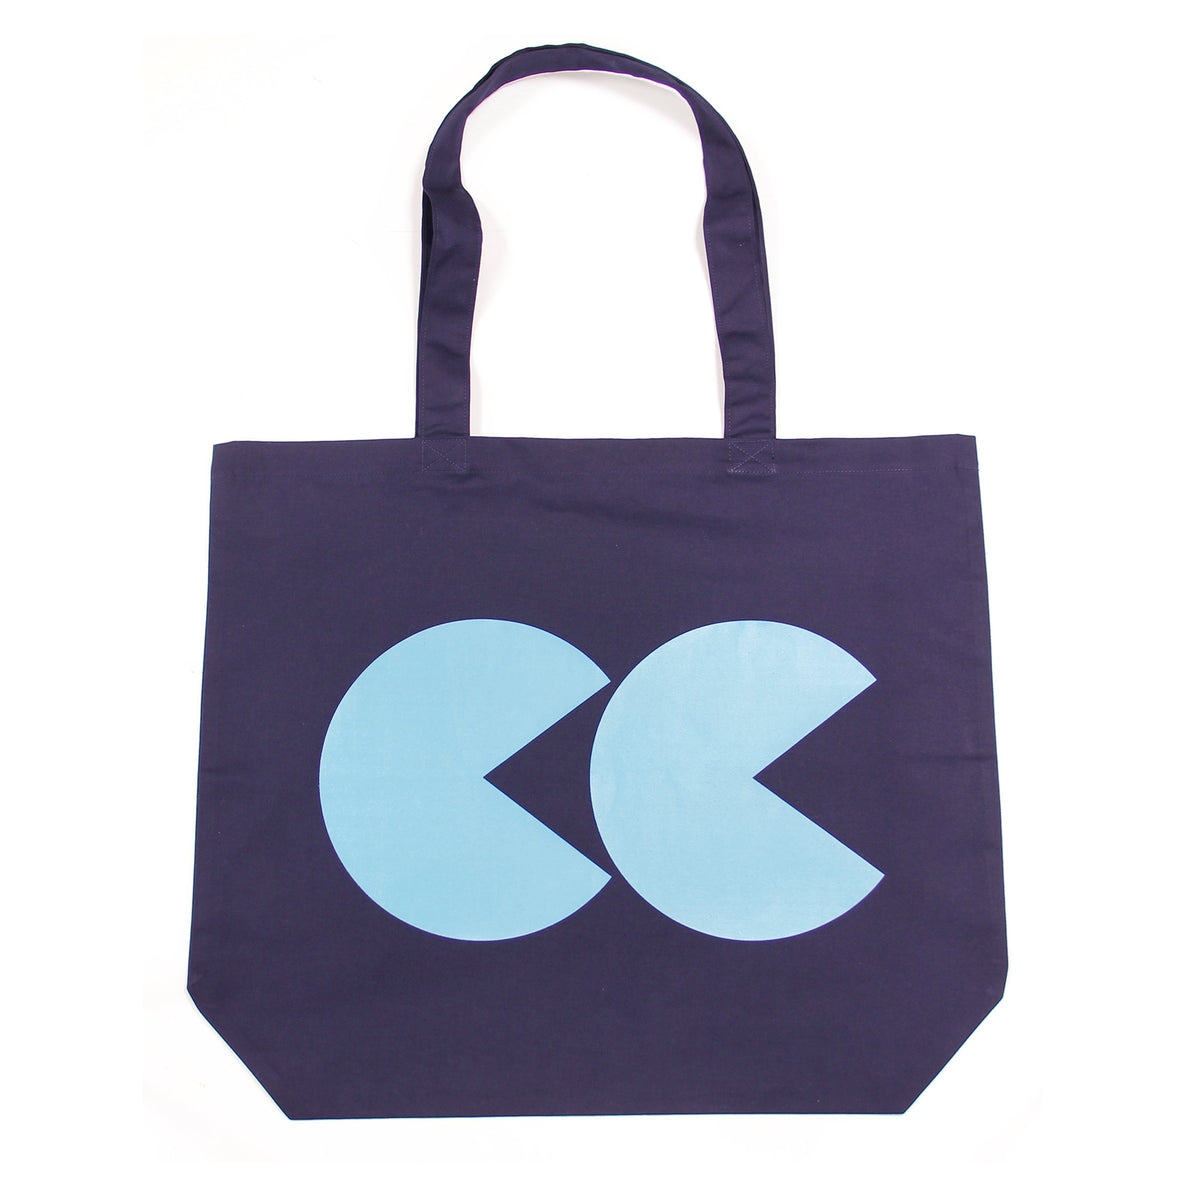 Printed CC Tote Bag Navy and Teal - Community Clothing